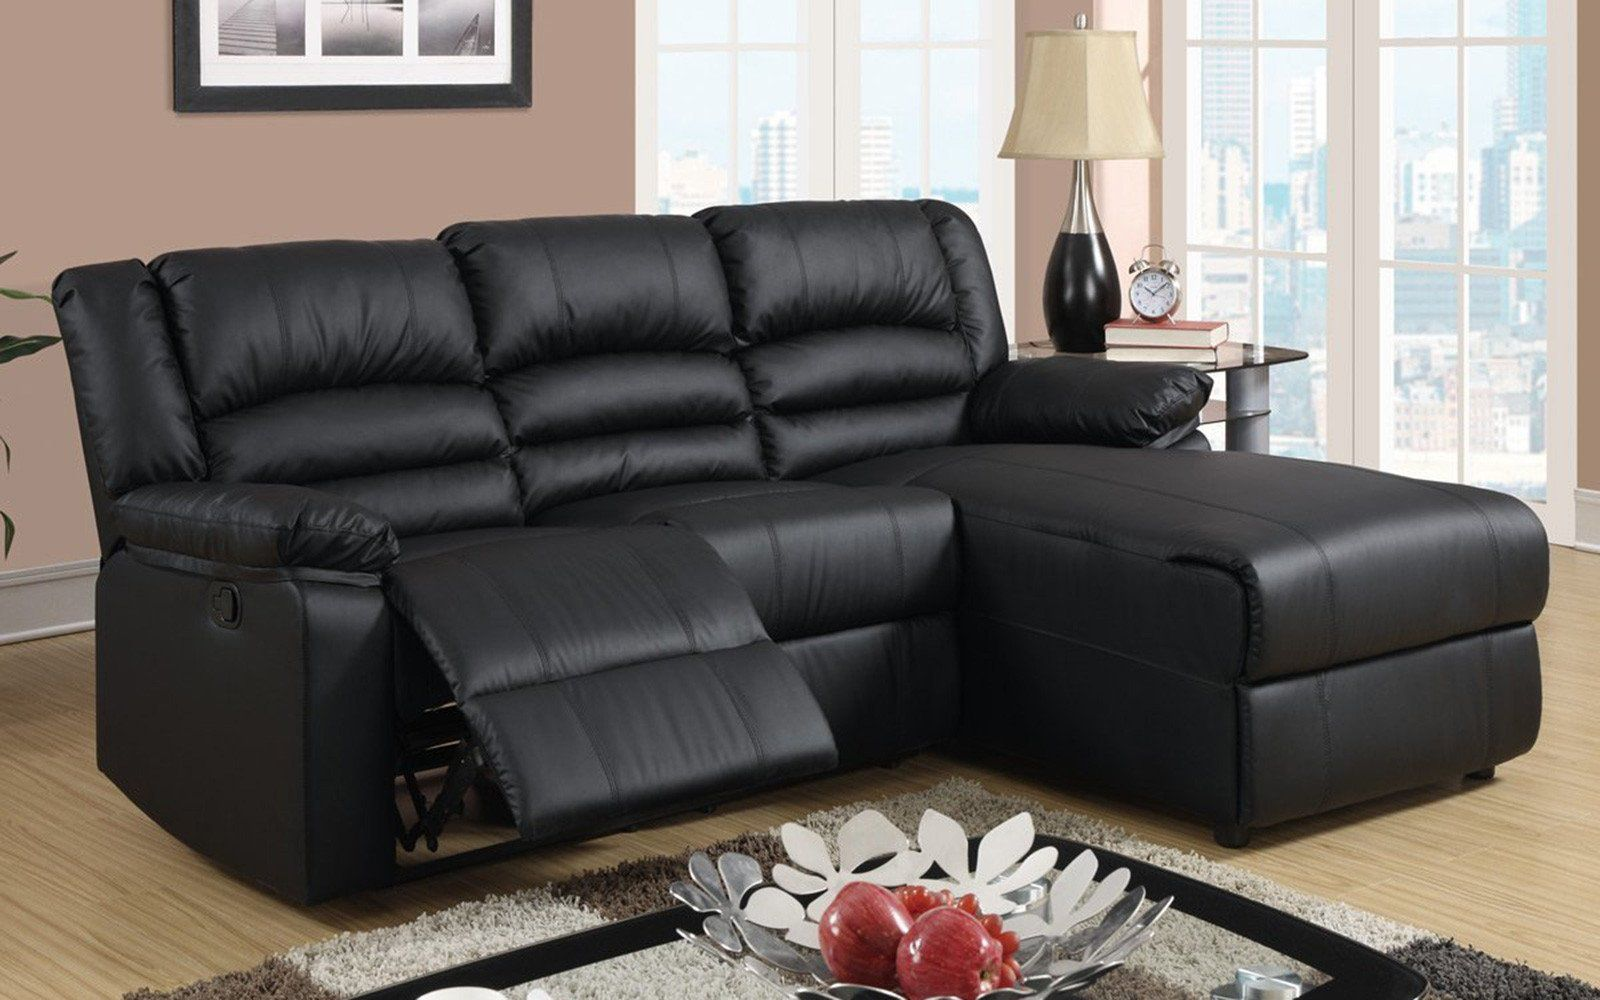 Orion Modern Small Recliner With Chaise Sofas For Small Spaces Sectional Sofa With Recliner Small Space Sectional Sofa